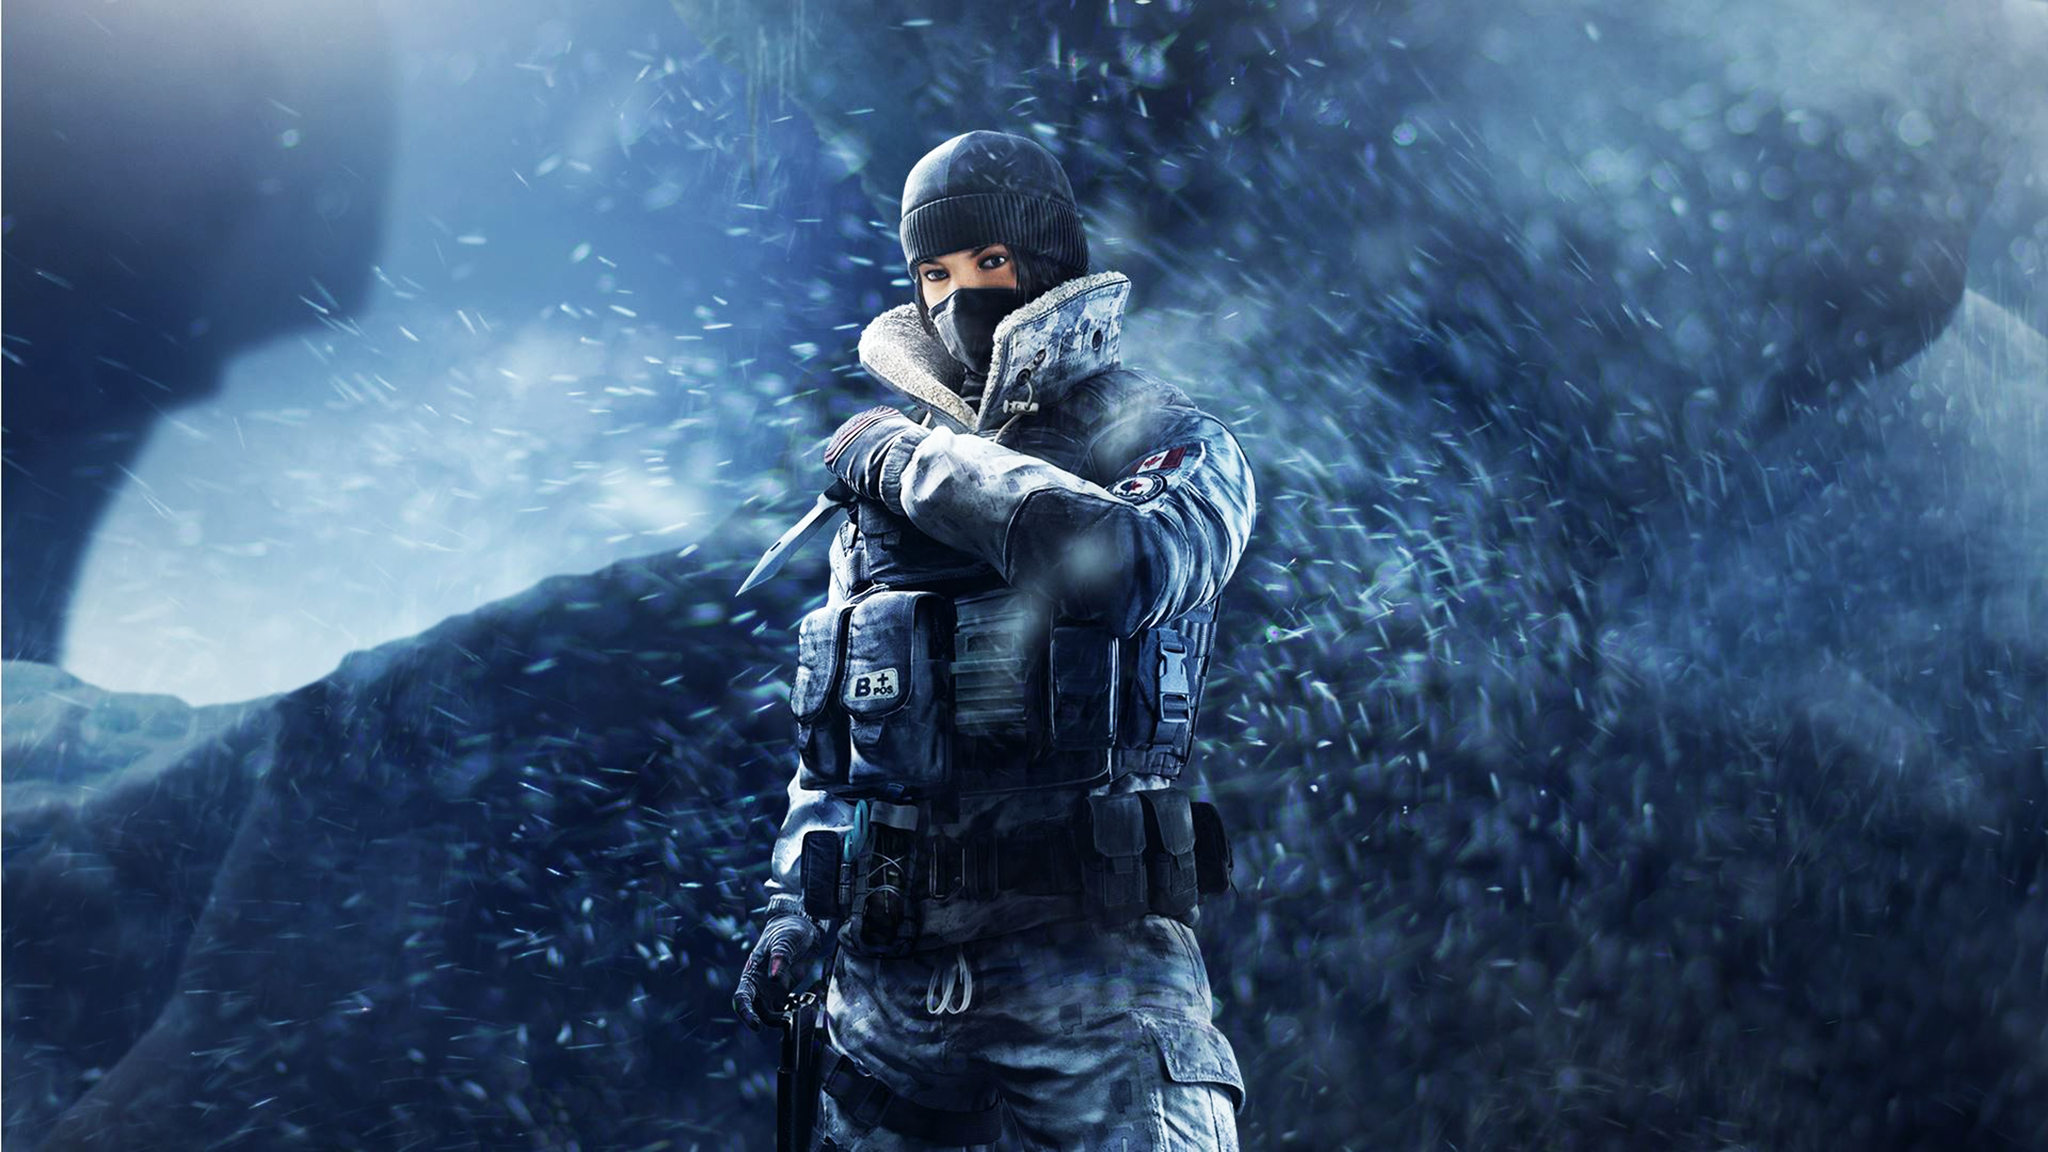 Rainbow Six Siege Wallpaper Hd: 2048x1152 Frost Tom Clancys Rainbow Six Siege 5k 2048x1152